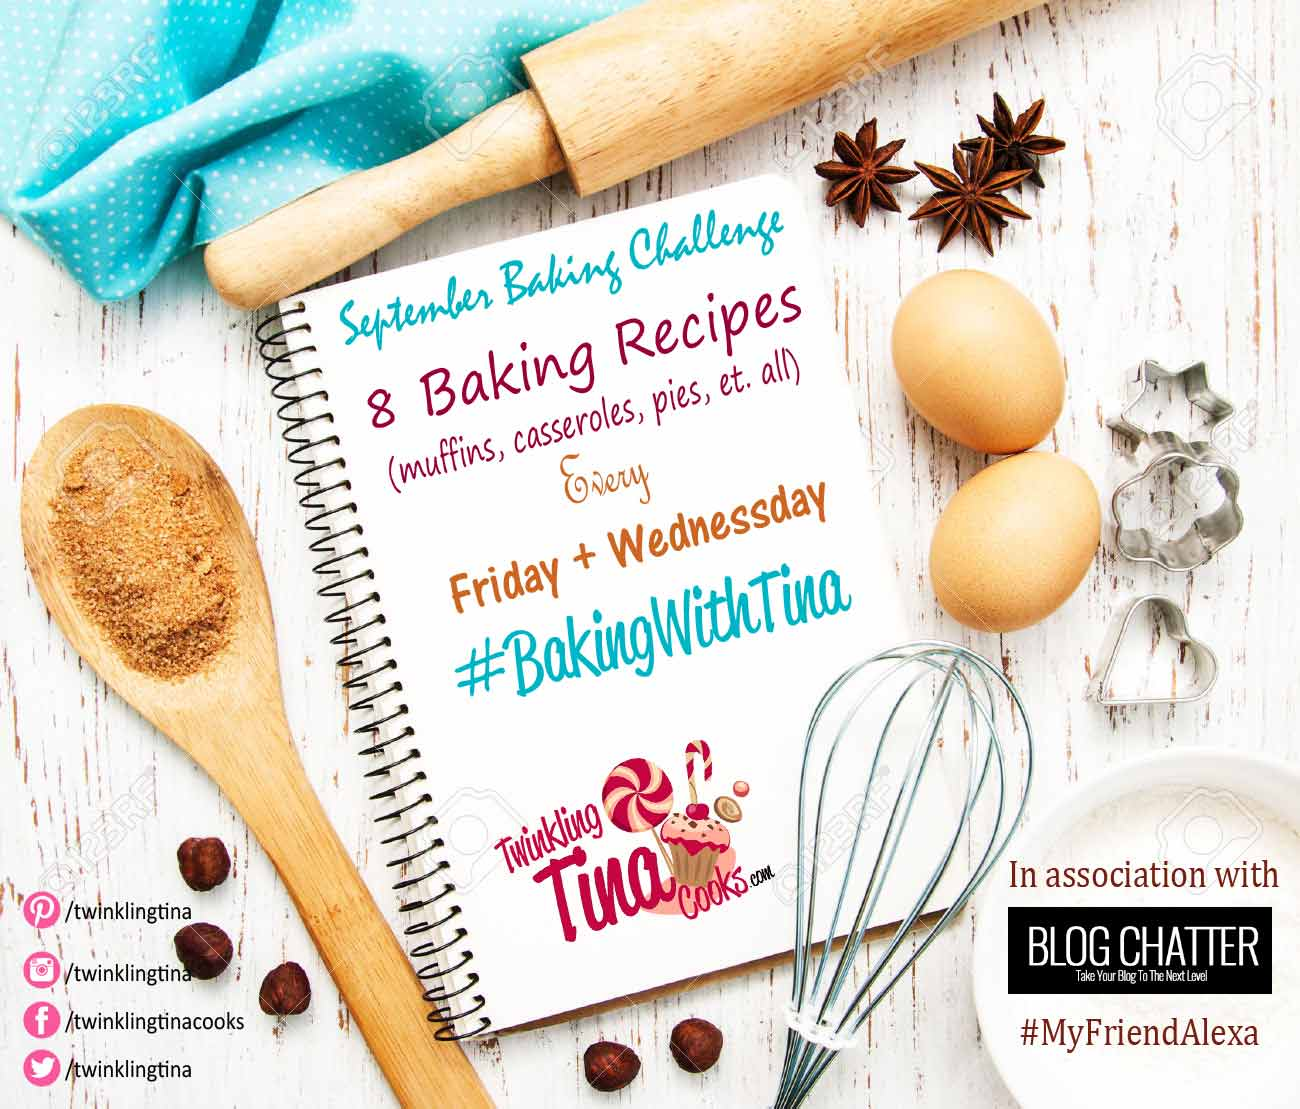 baking-challenge-twinkling-tina-cooks-recipe-pies-casserole-muffins-blogchatter